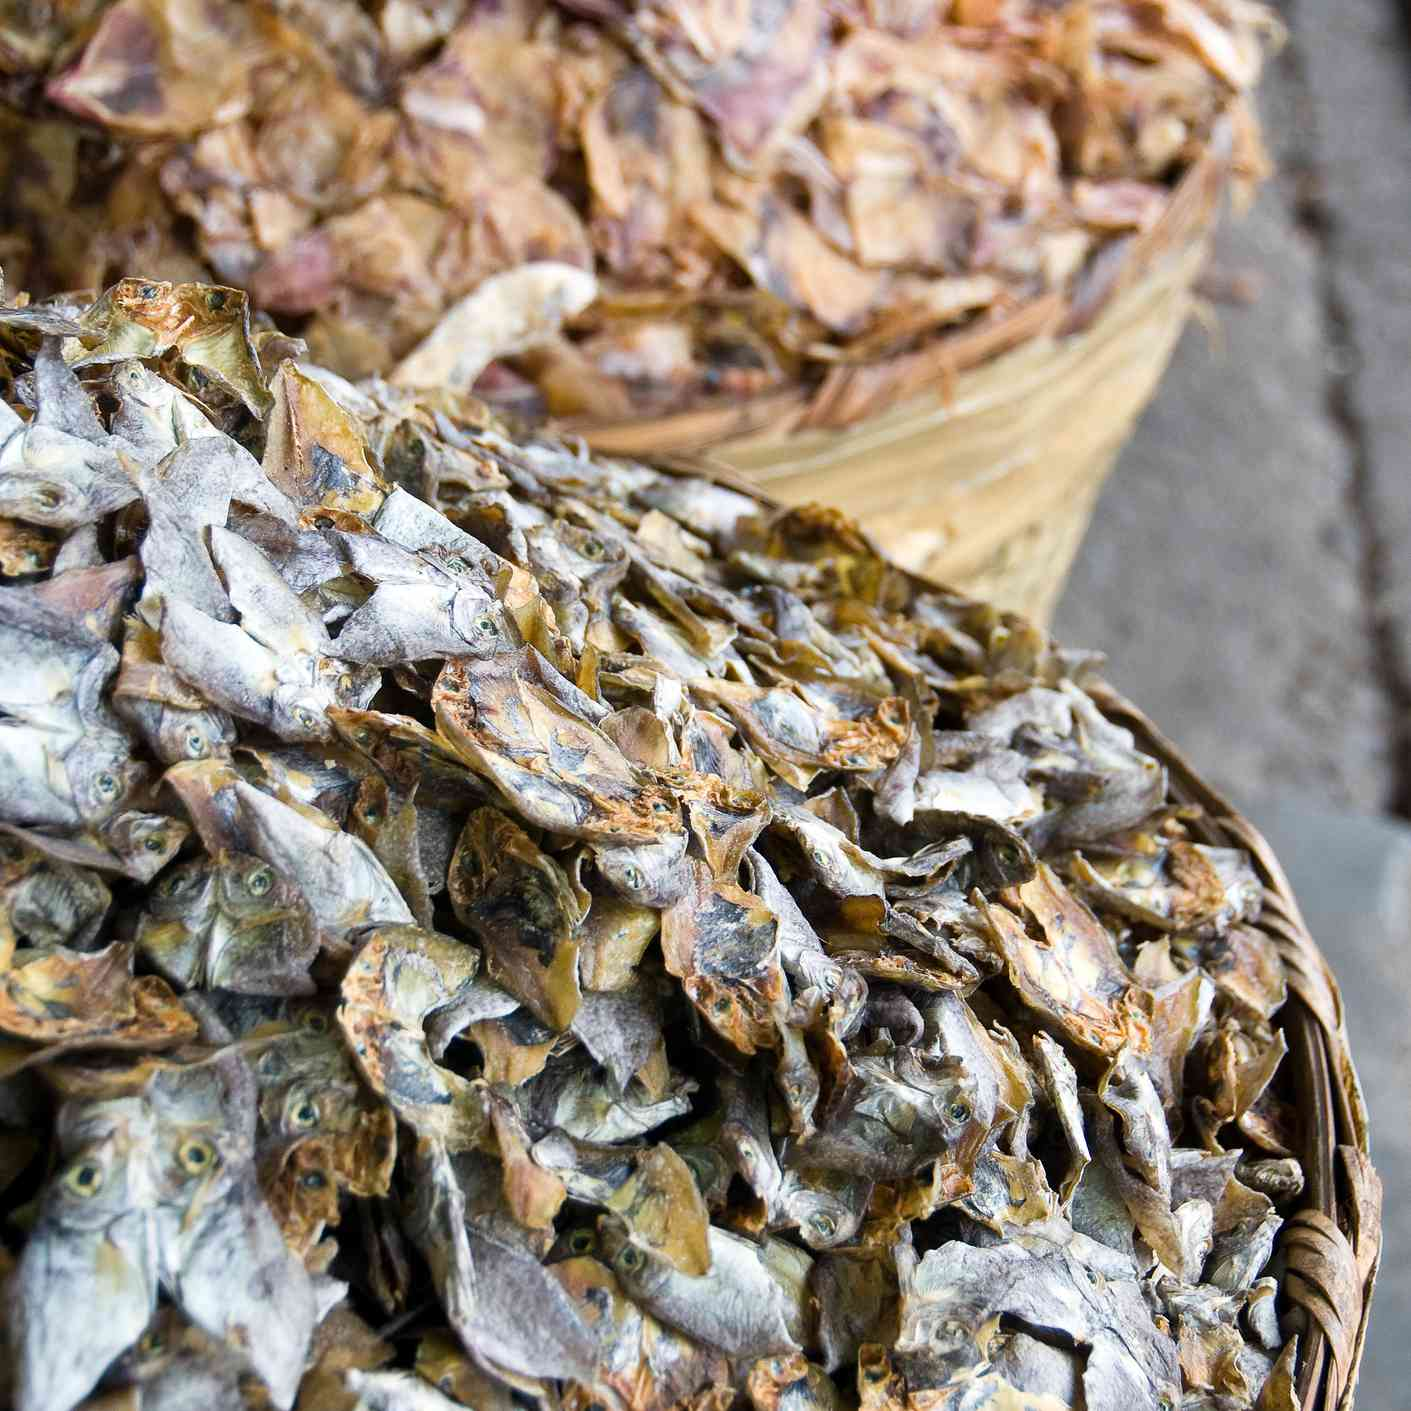 two large containers of dried fish in Cebu